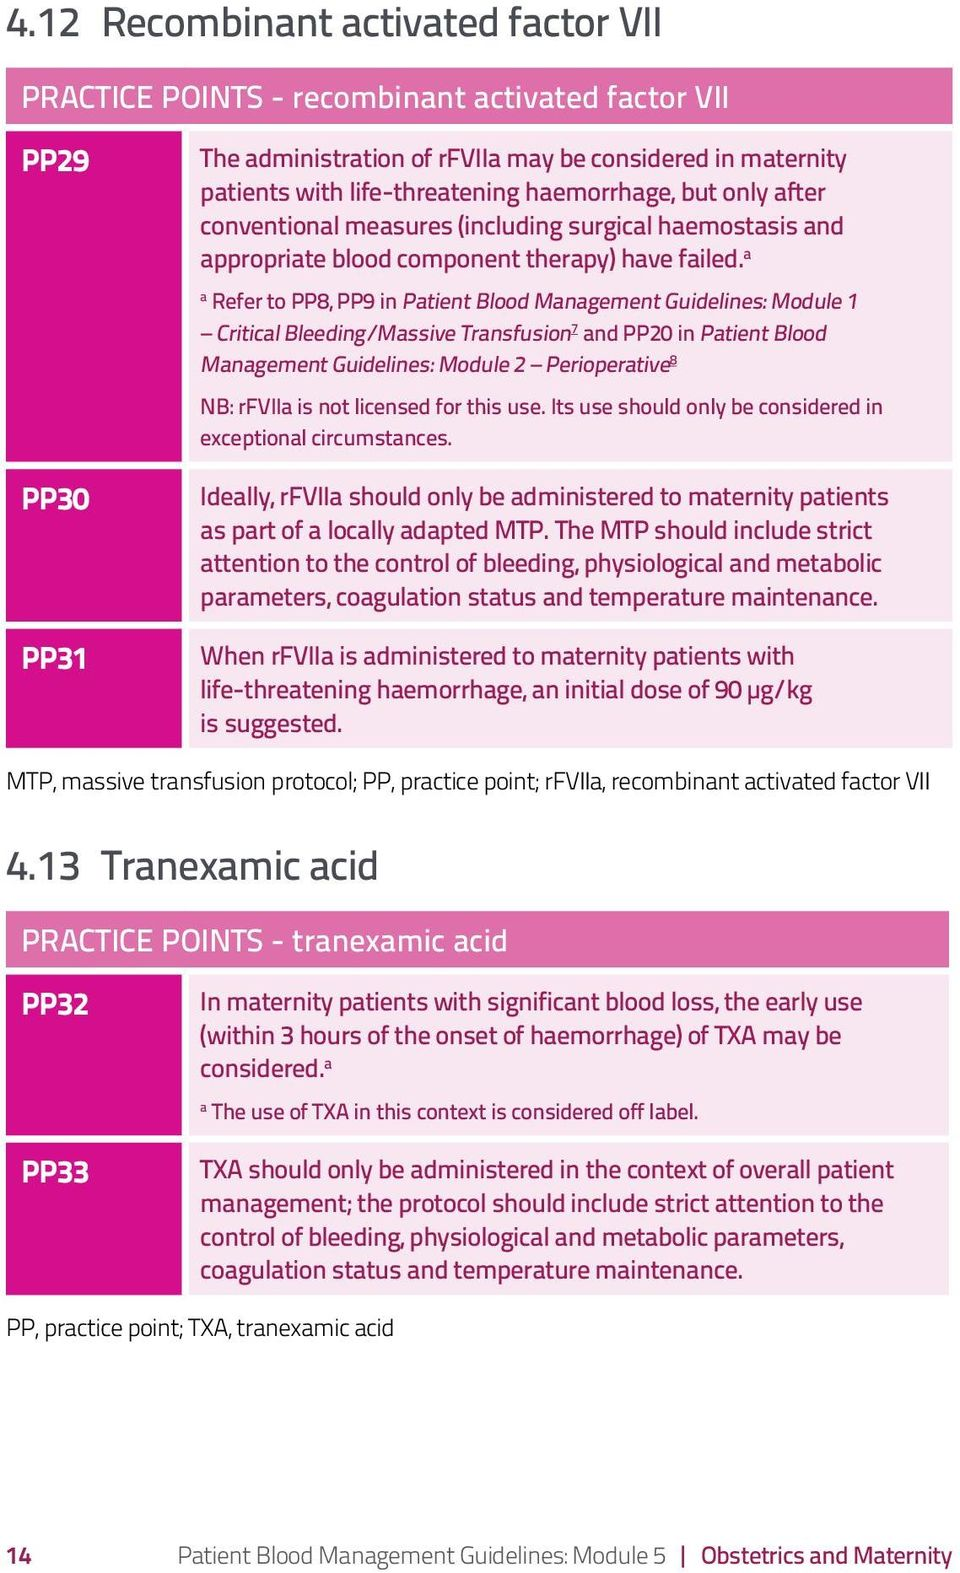 a a Refer to PP8, PP9 in Patient Blood Management Guidelines: Module 1 Critical Bleeding/Massive Transfusion 7 and PP20 in Patient Blood Management Guidelines: Module 2 Perioperative 8 NB: rfviia is